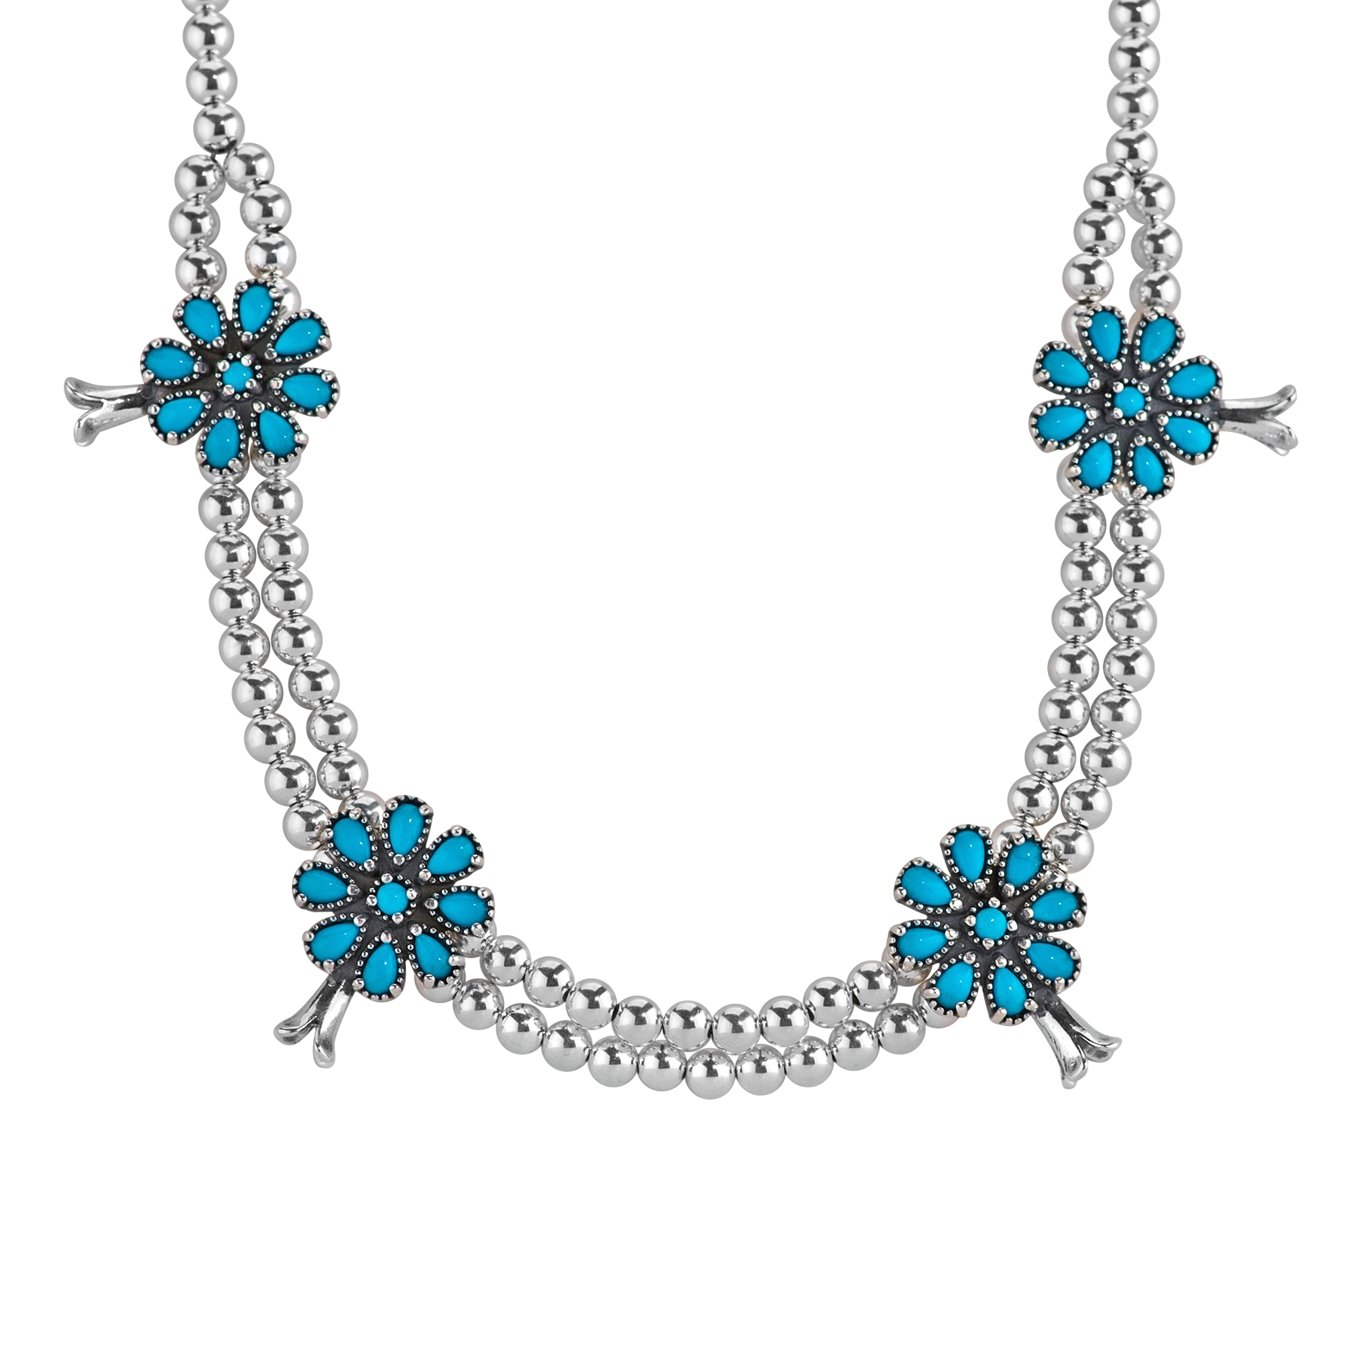 American West Sterling Silver and Sleeping Beauty Turquoise Squash Blossom Necklace -18 Inches Long - Sleeping Beauty Collection